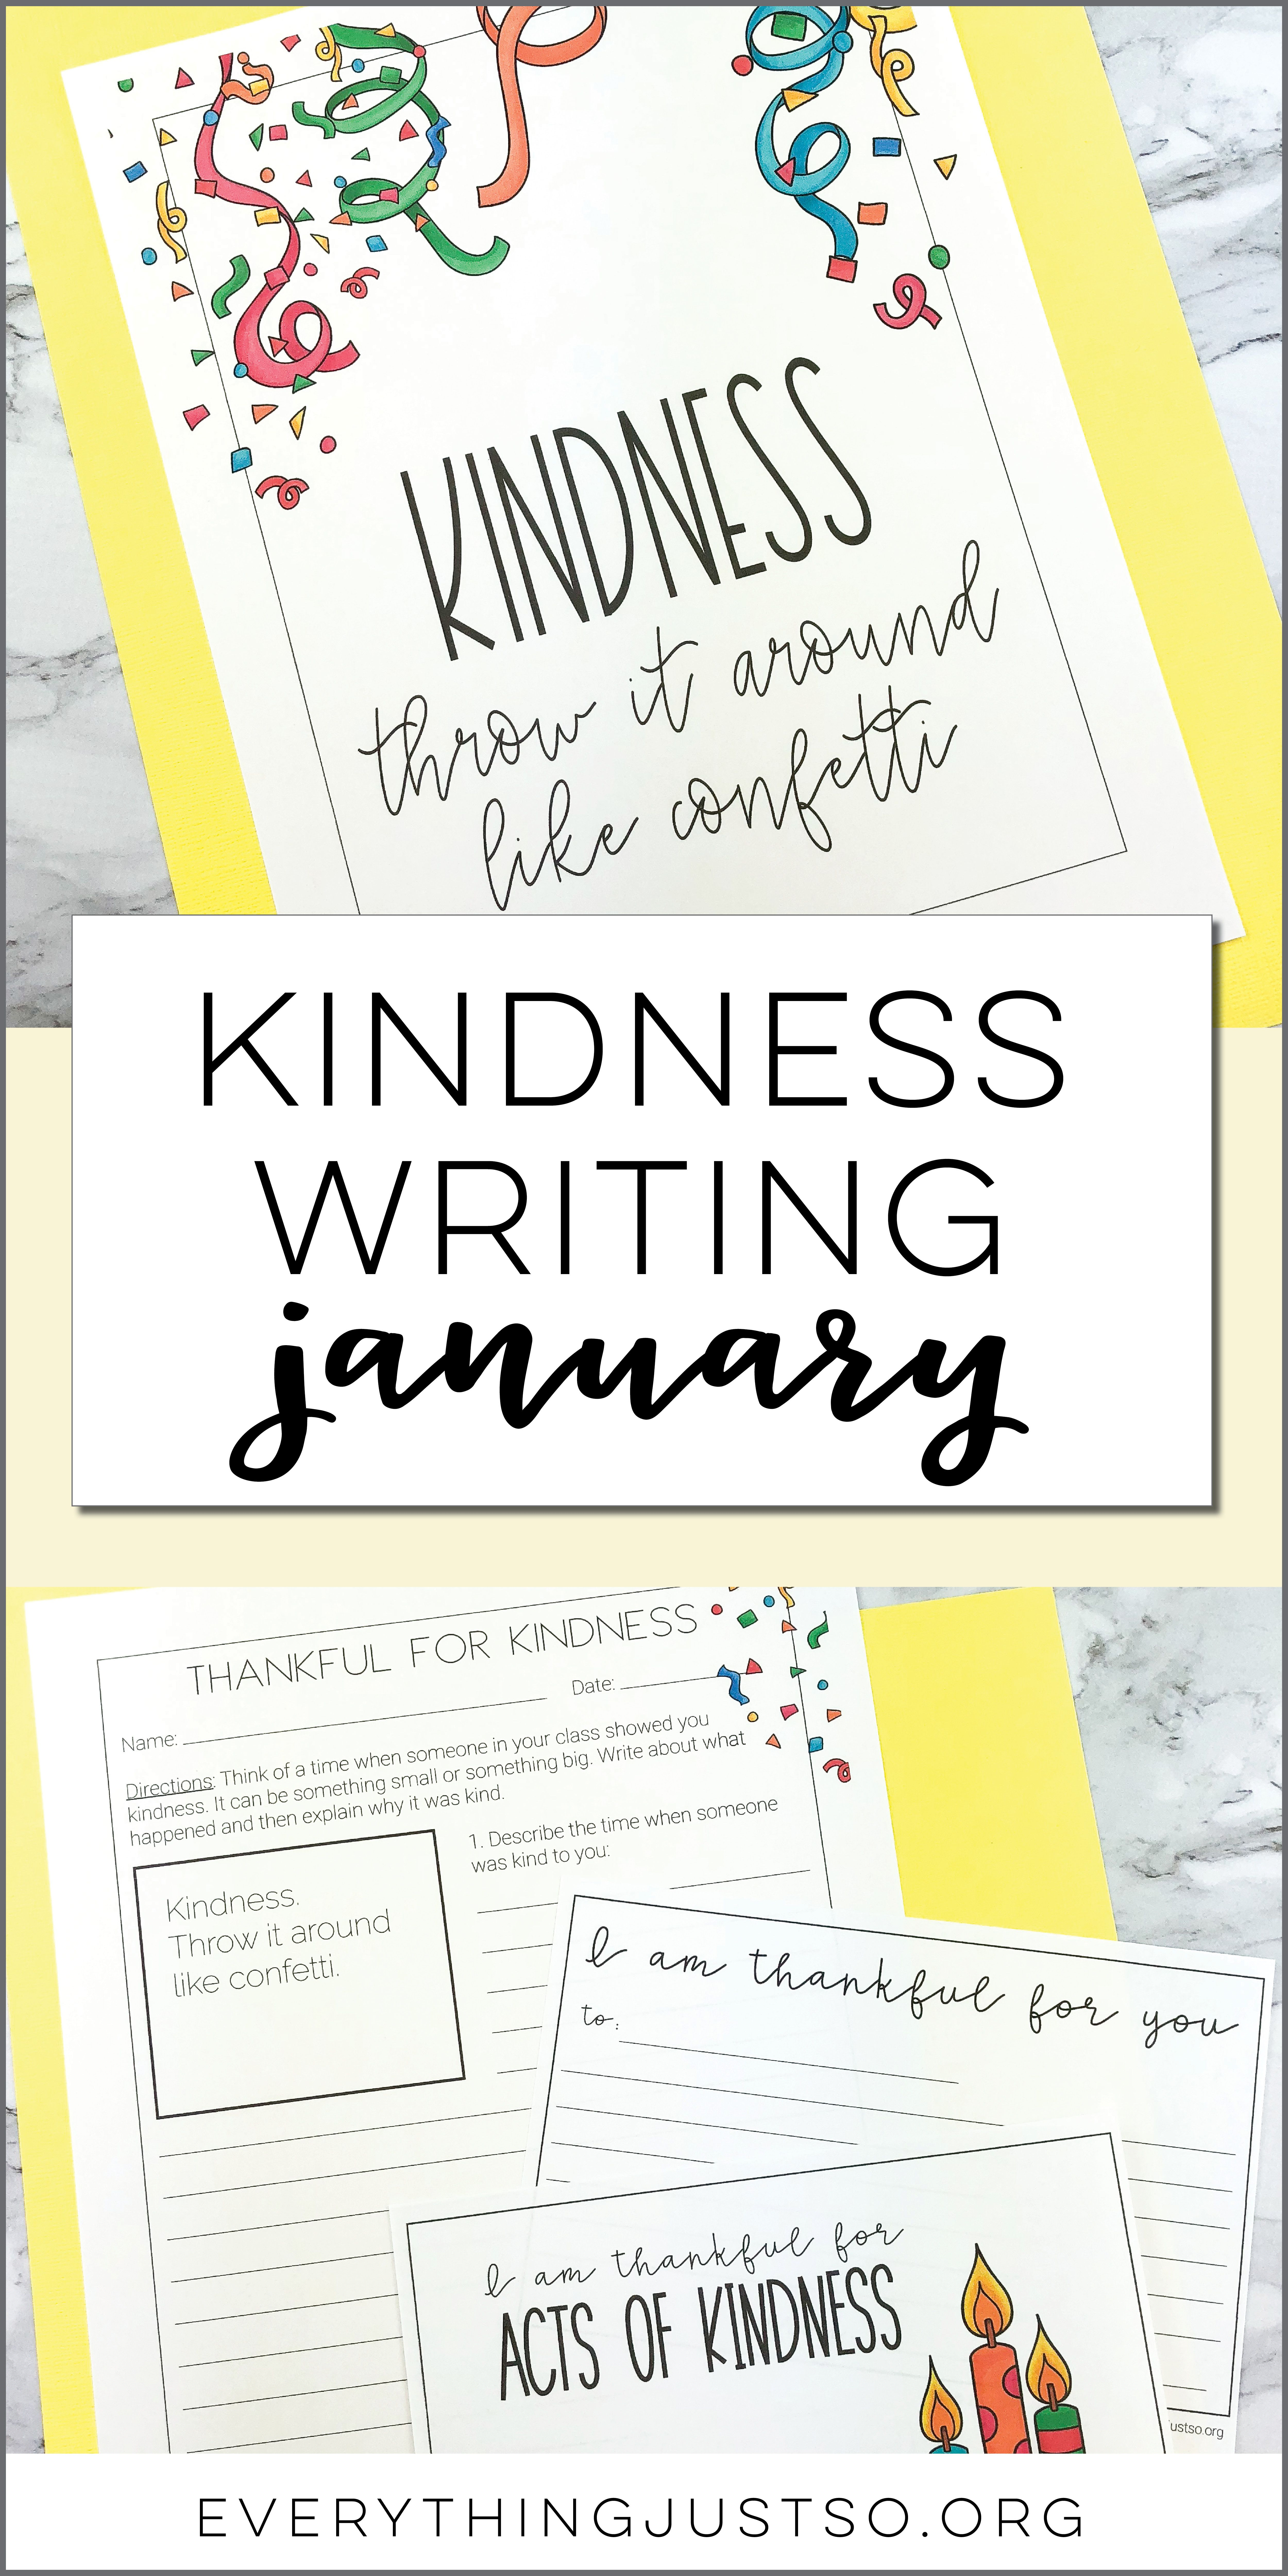 January Thankful For Kindness Writing Activity